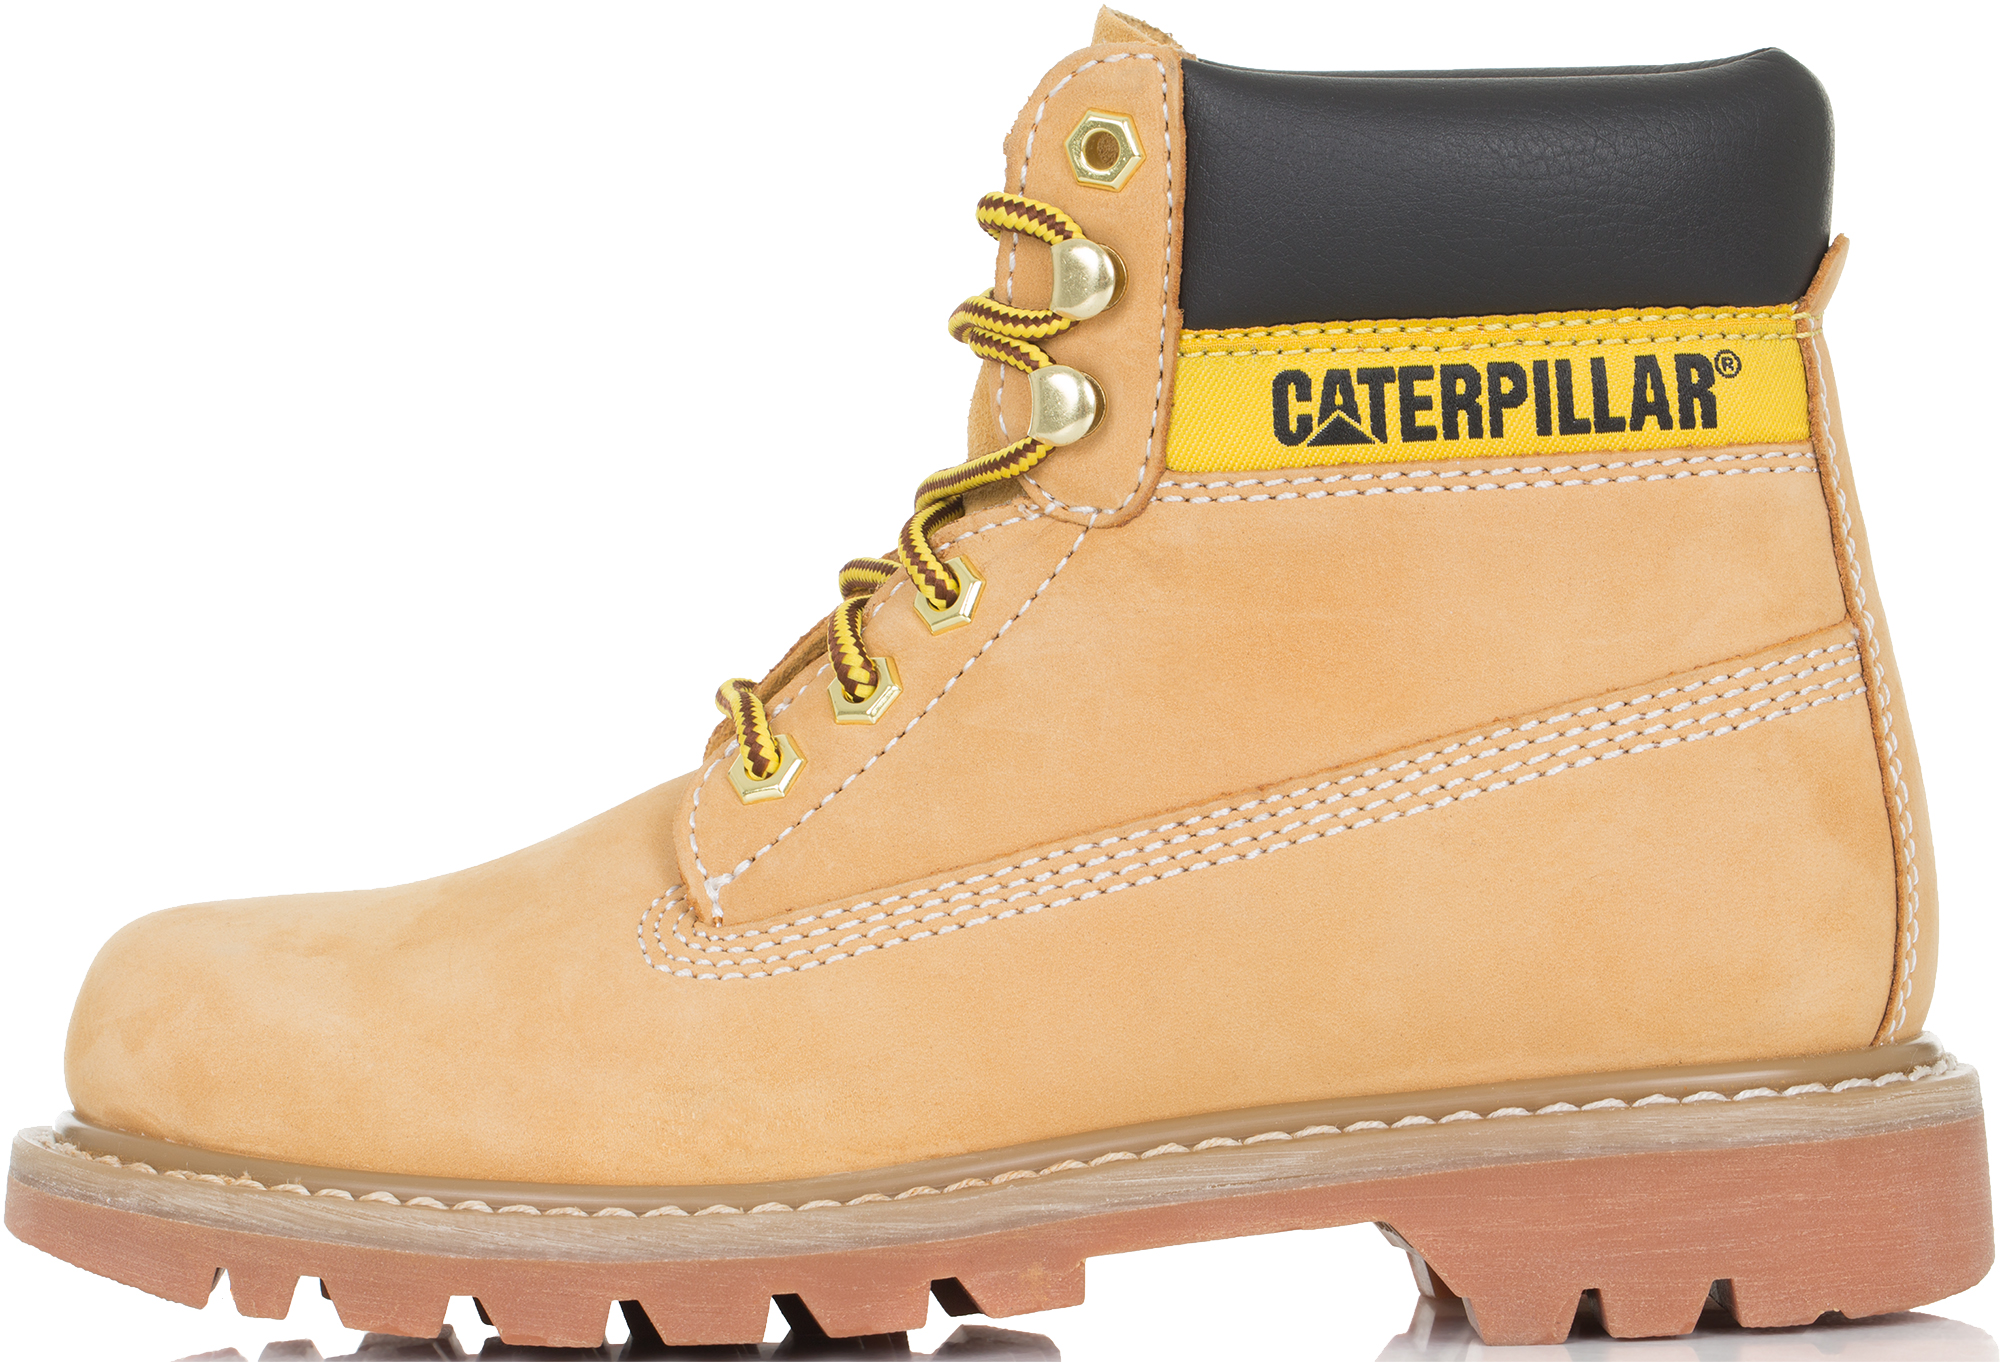 Caterpillar Ботинки женские Caterpillar Colorado, размер 38,5 цена